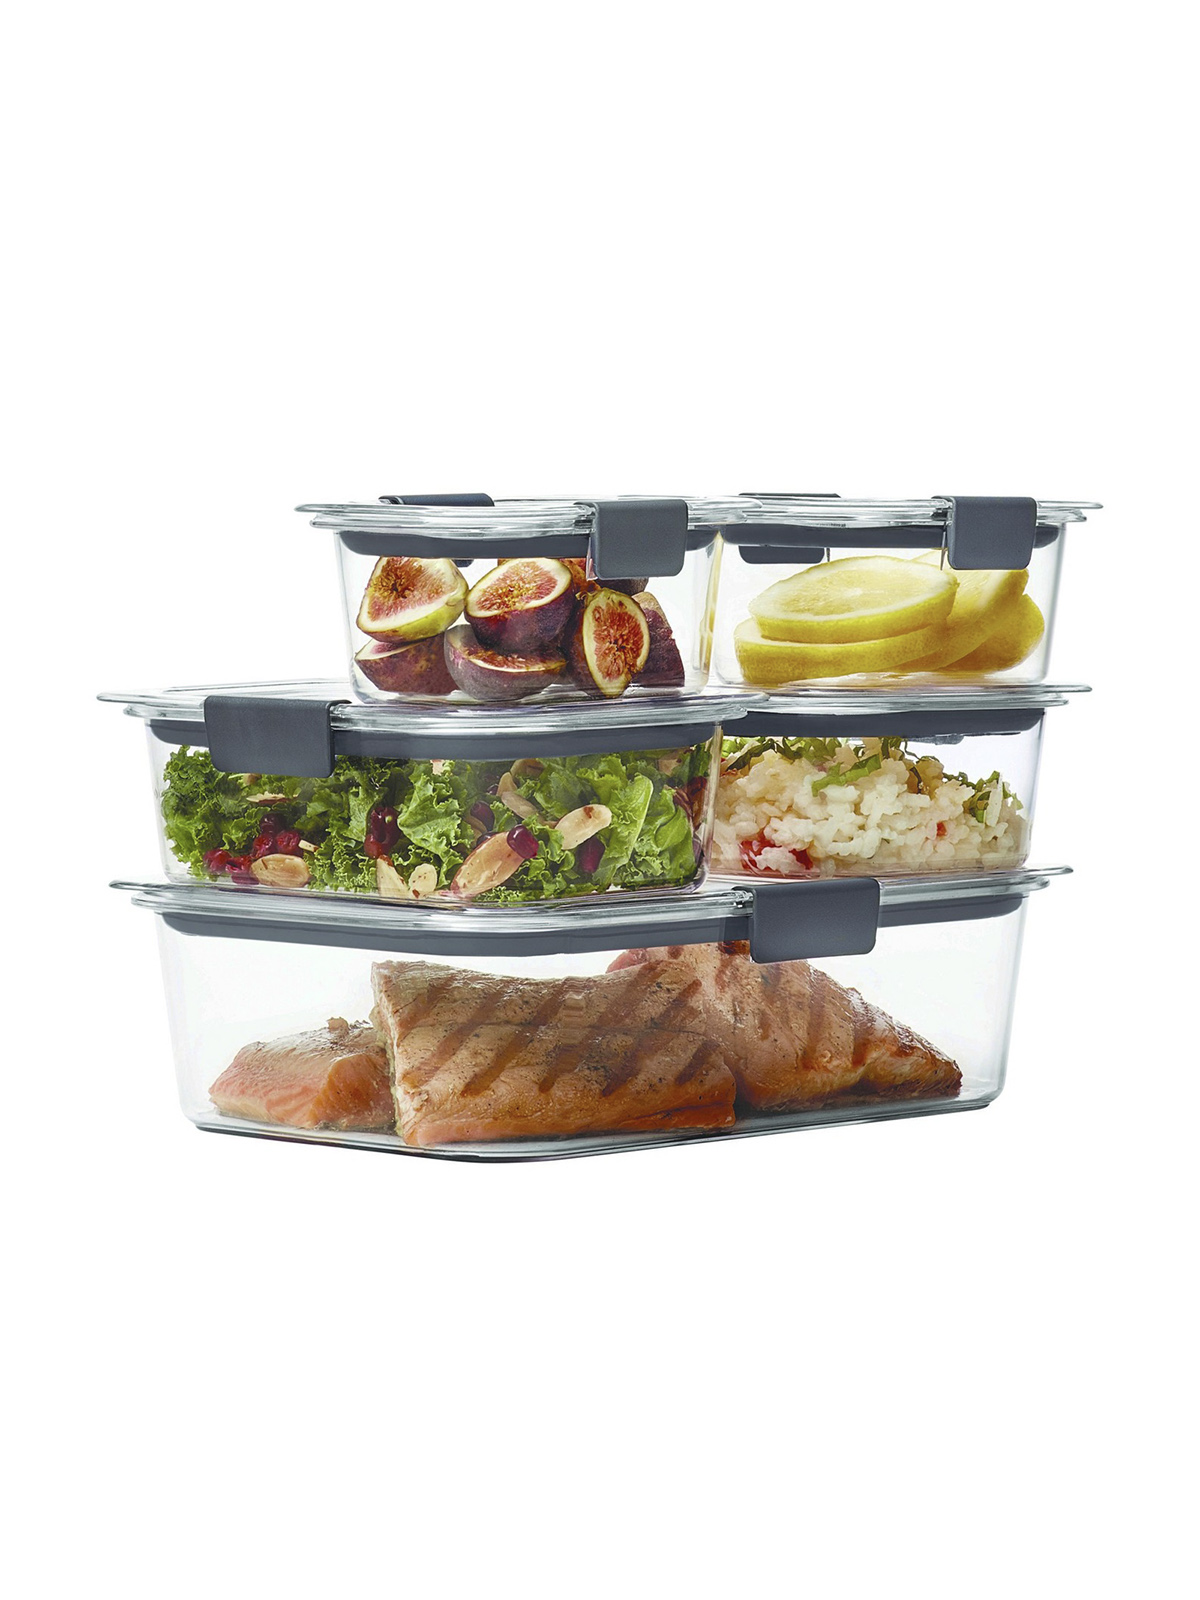 Rubbermaid Food Storage Containers, glass and gray rubber lids